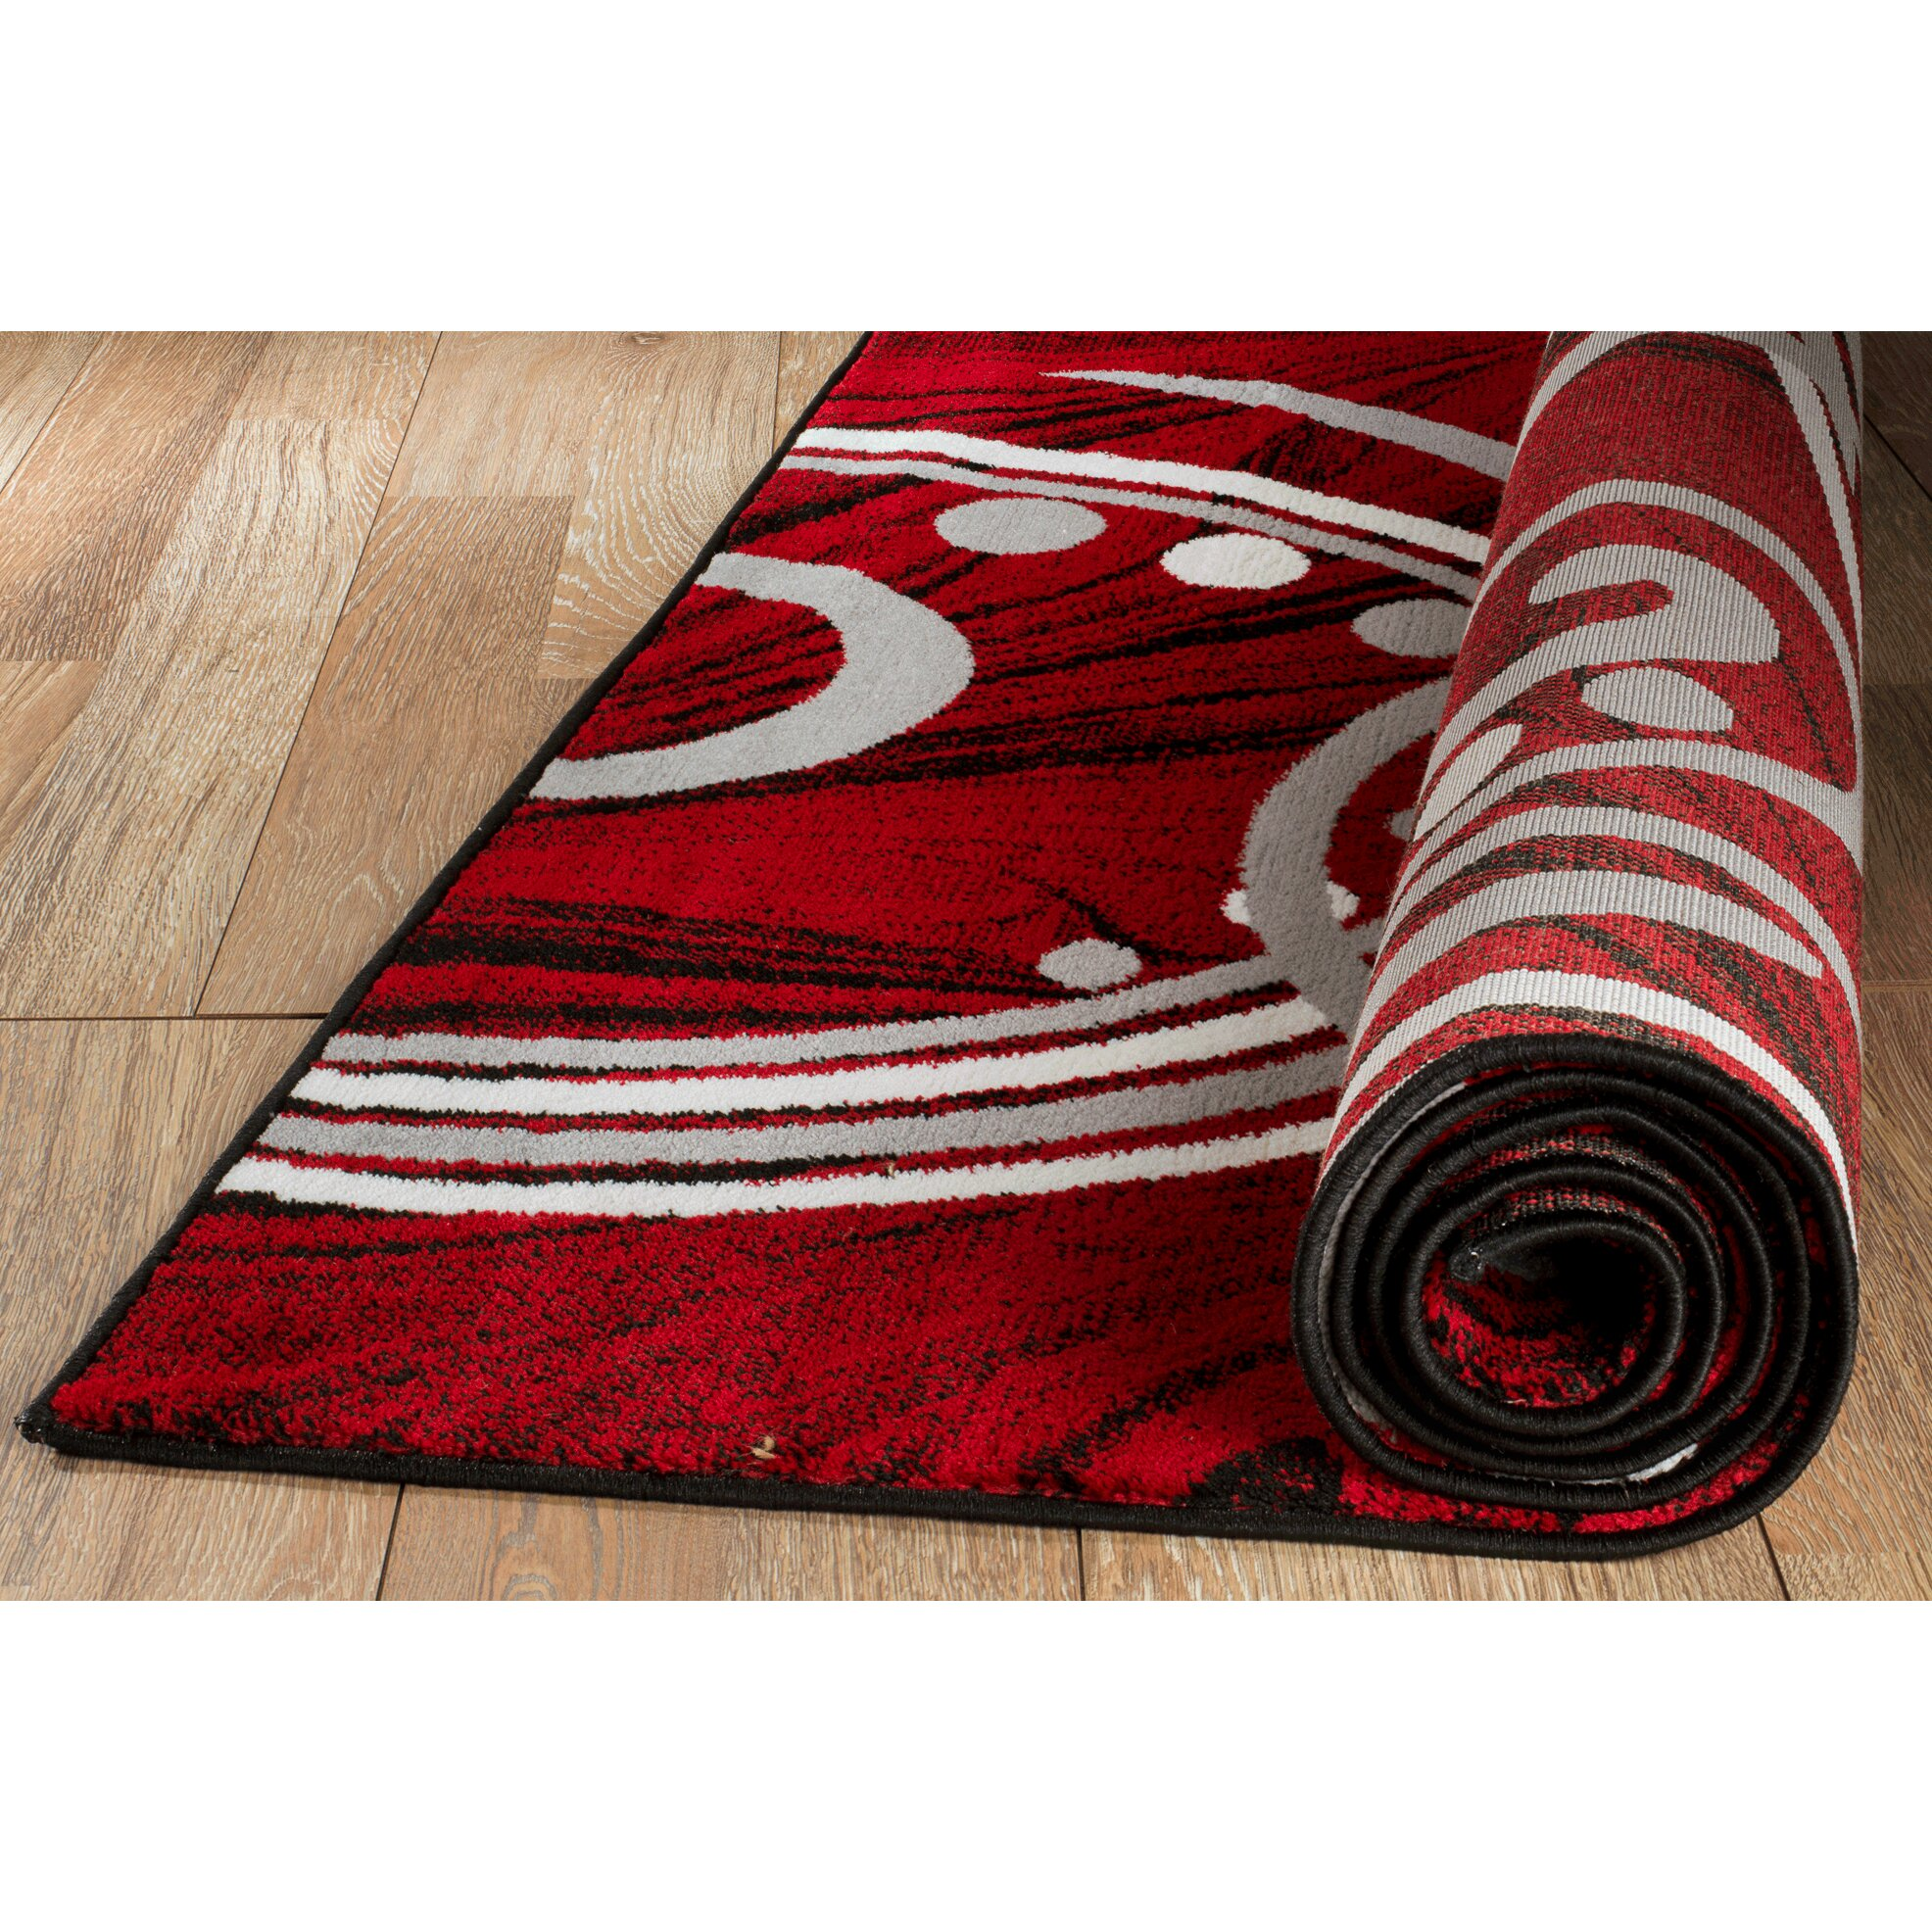 Rug And Decor Inc Summit Turquoise Area Rug Reviews: Rug And Decor Inc. Summit Elite Red Area Rug & Reviews